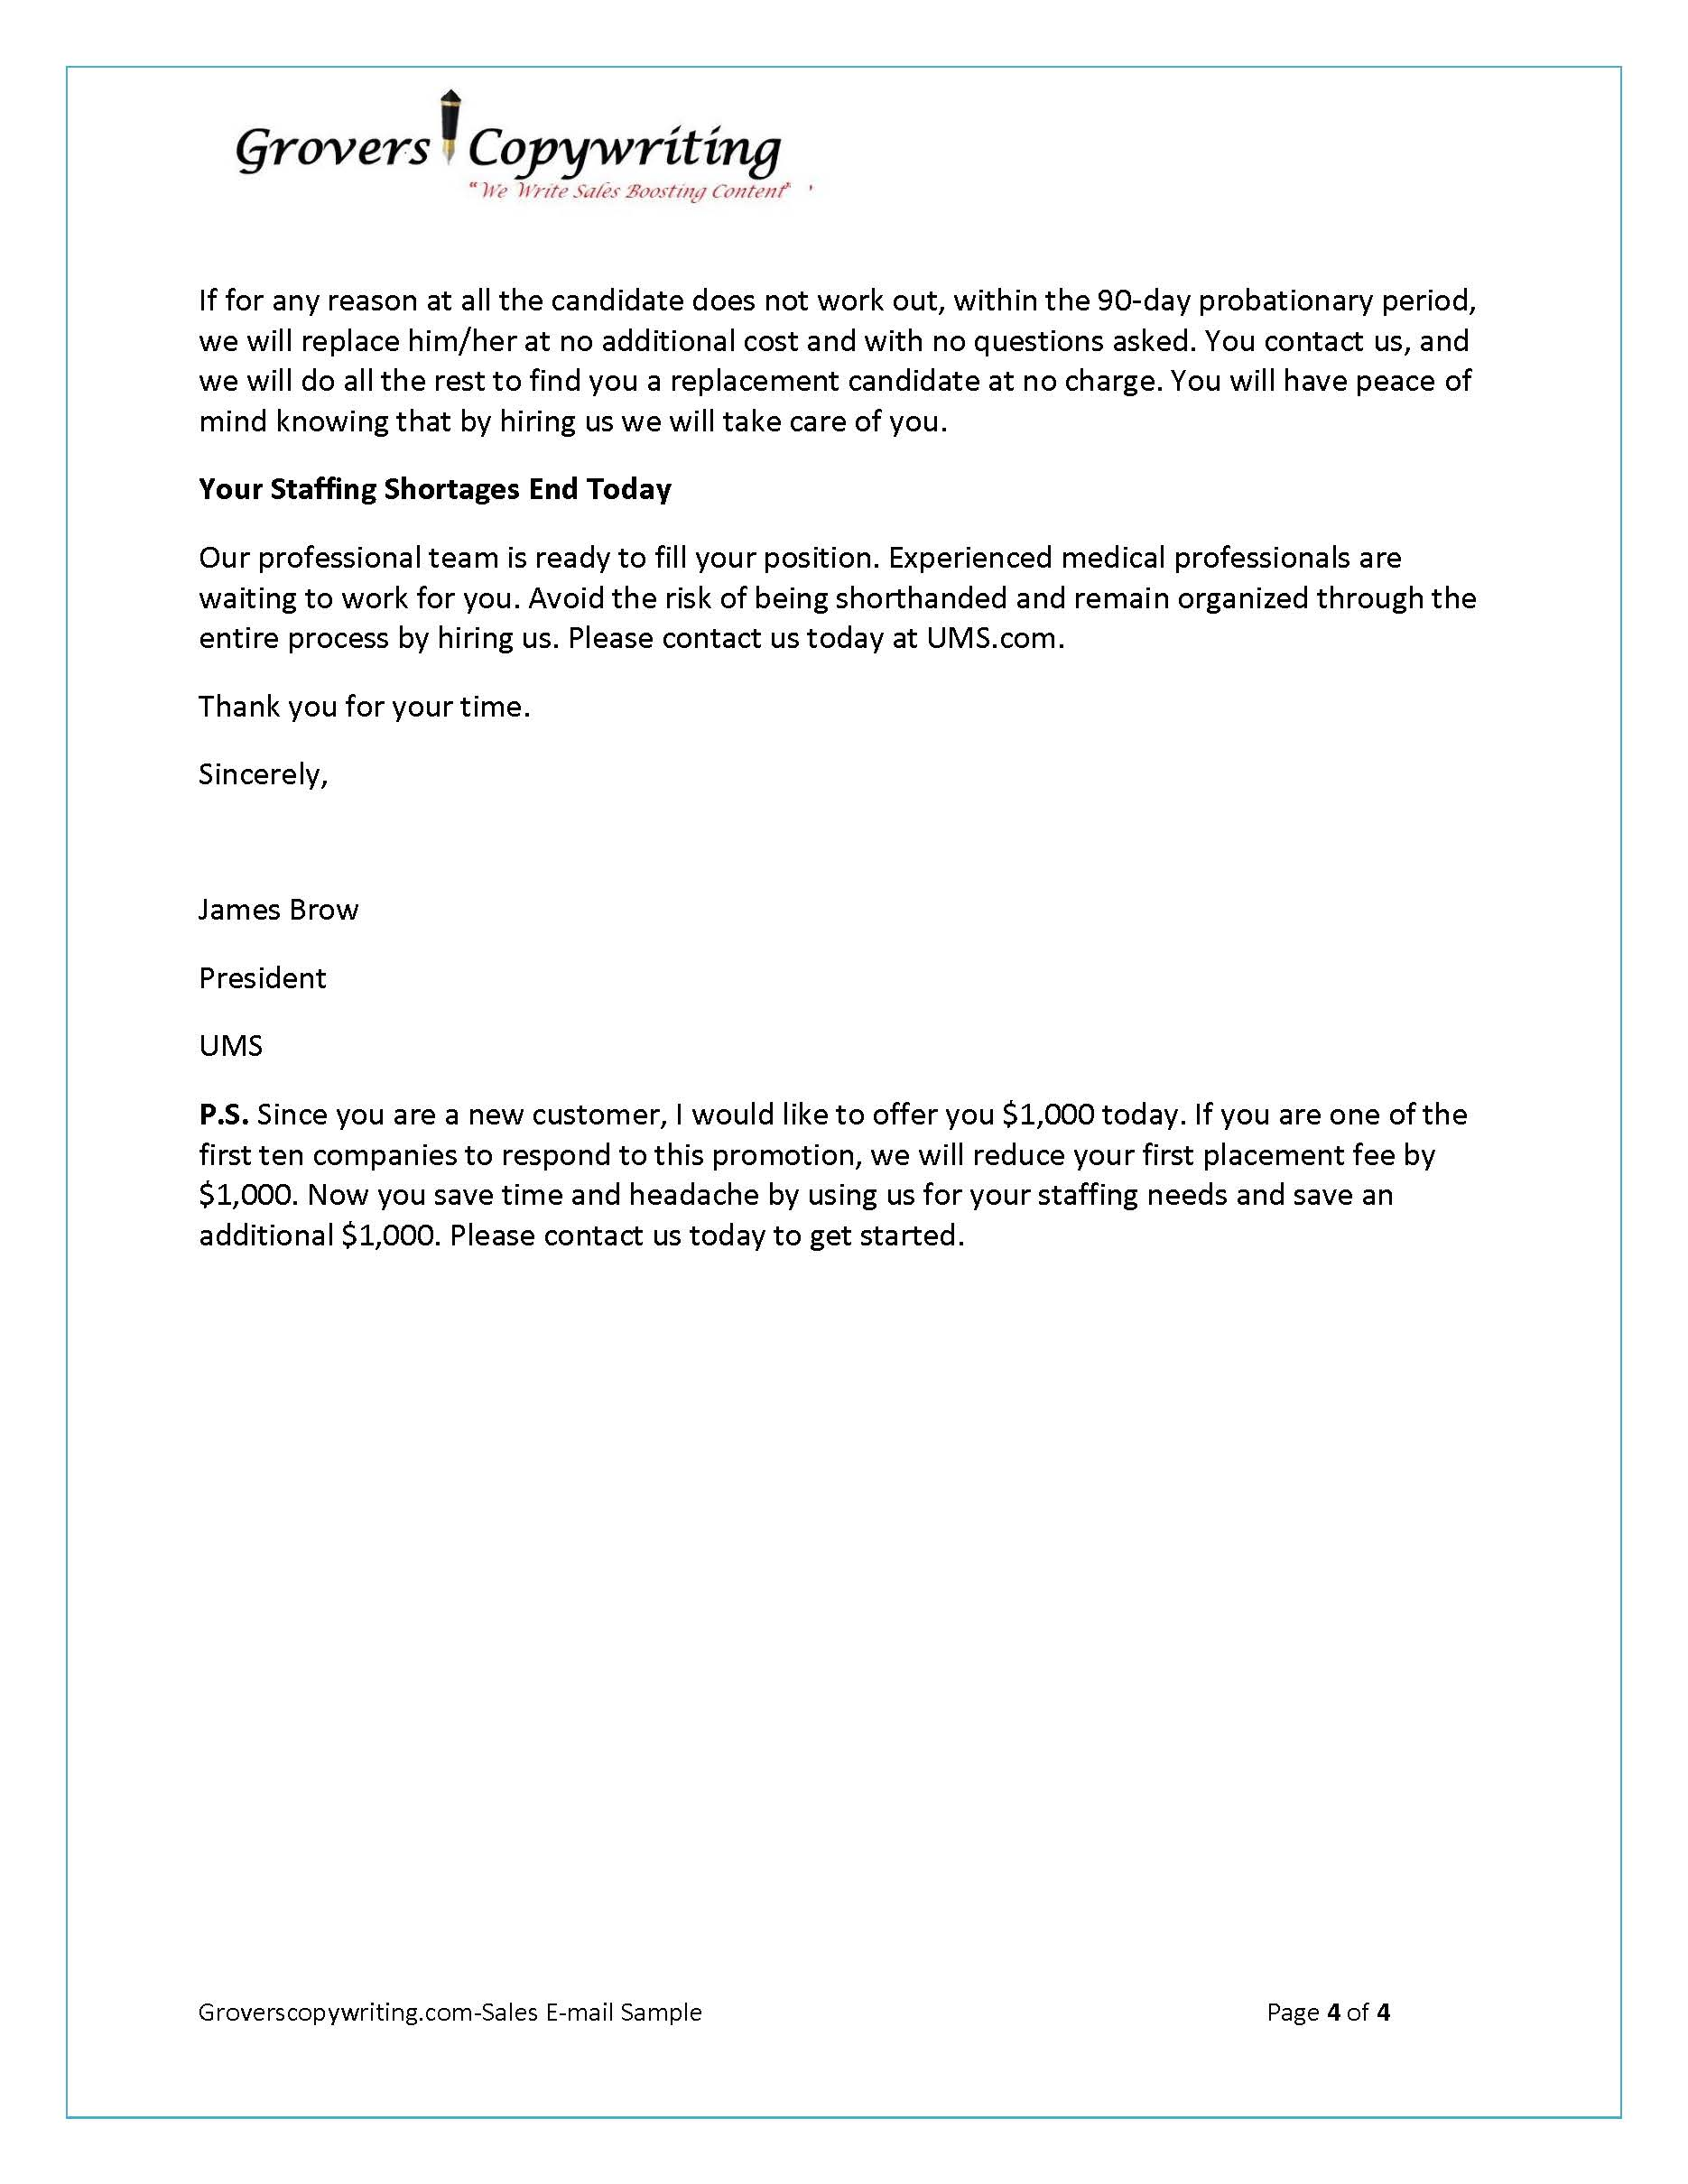 Sales Appointment Letter Format Pdf Counter Offer Letter Sample